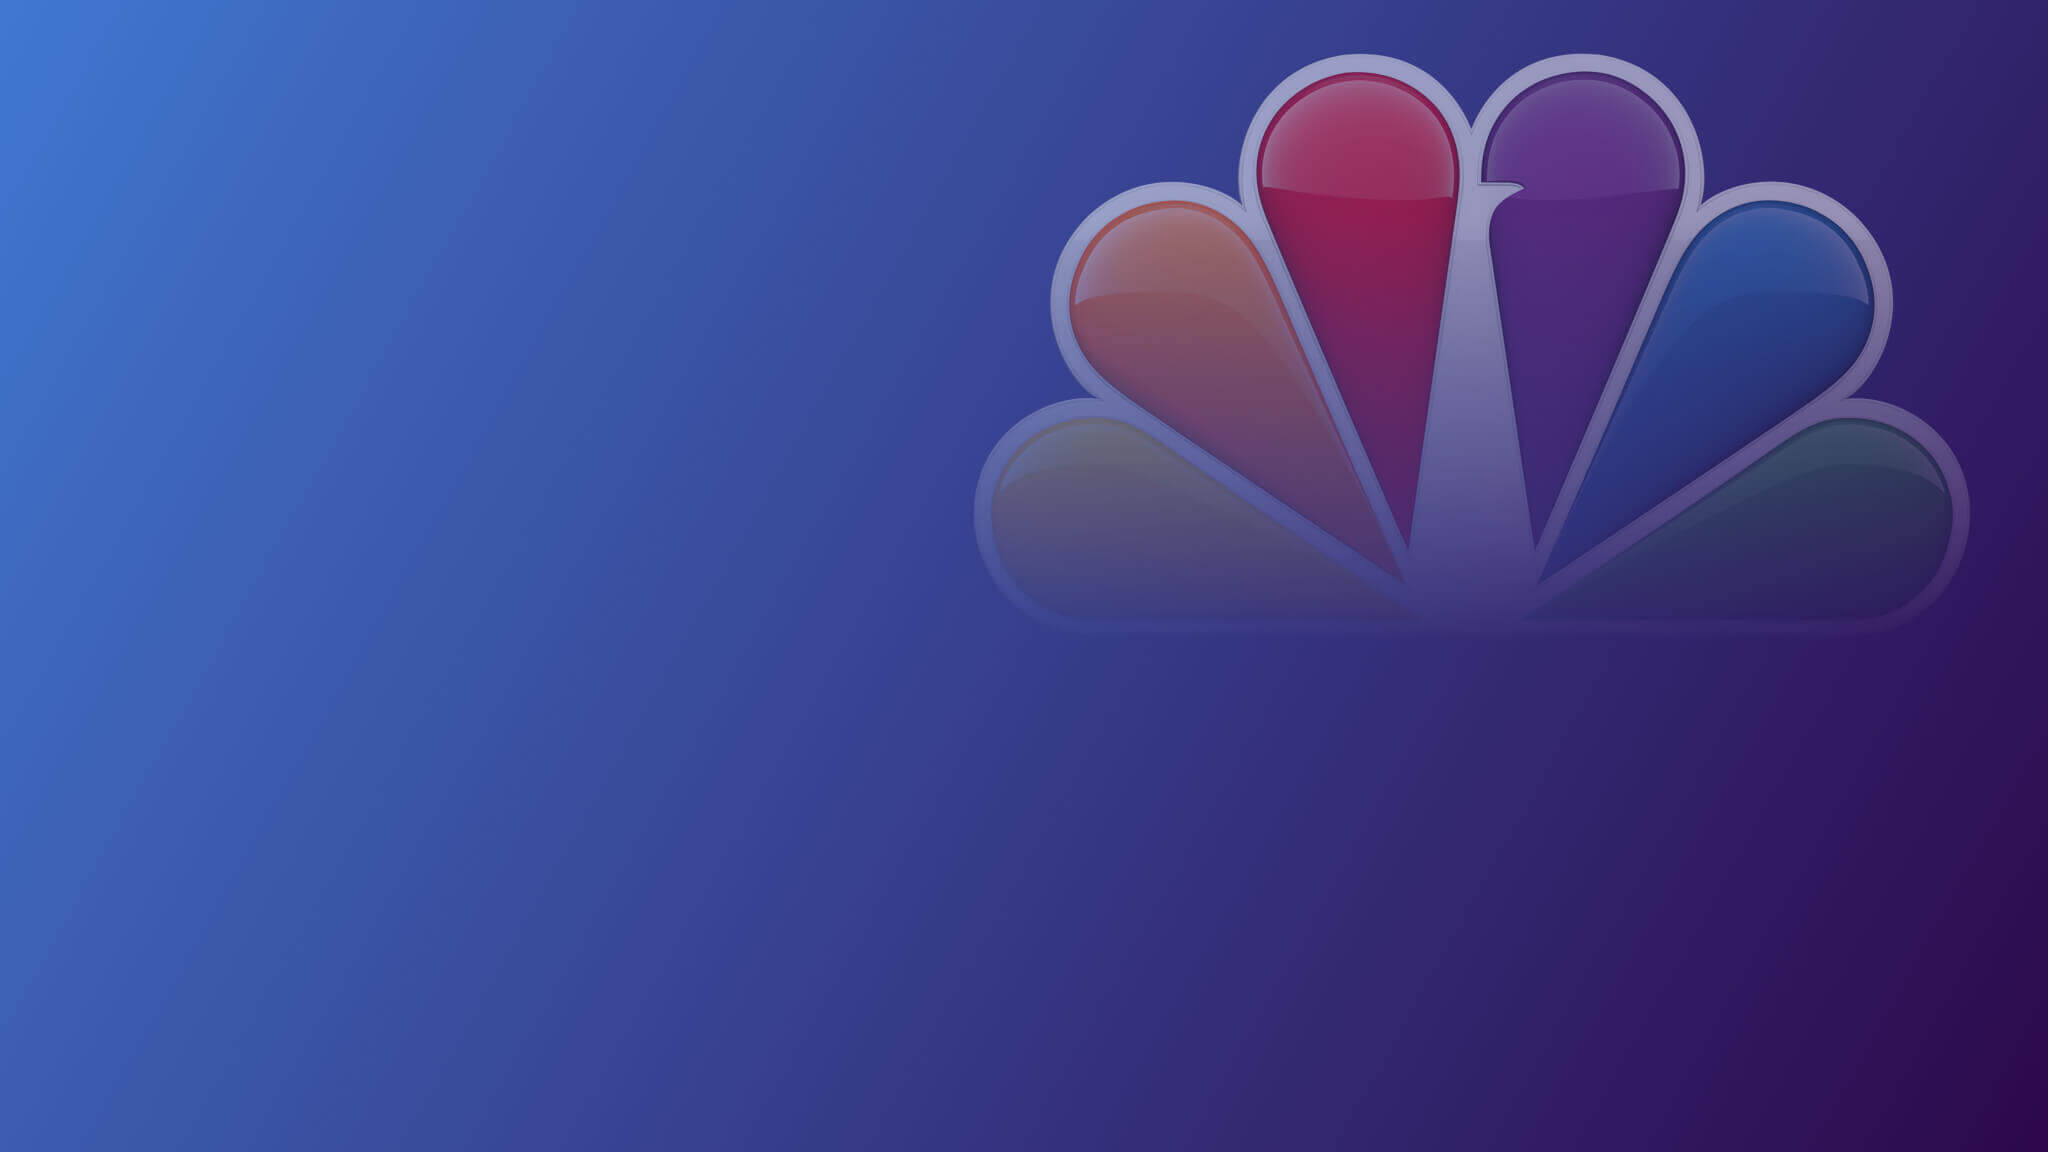 Local Stations Nbc Com